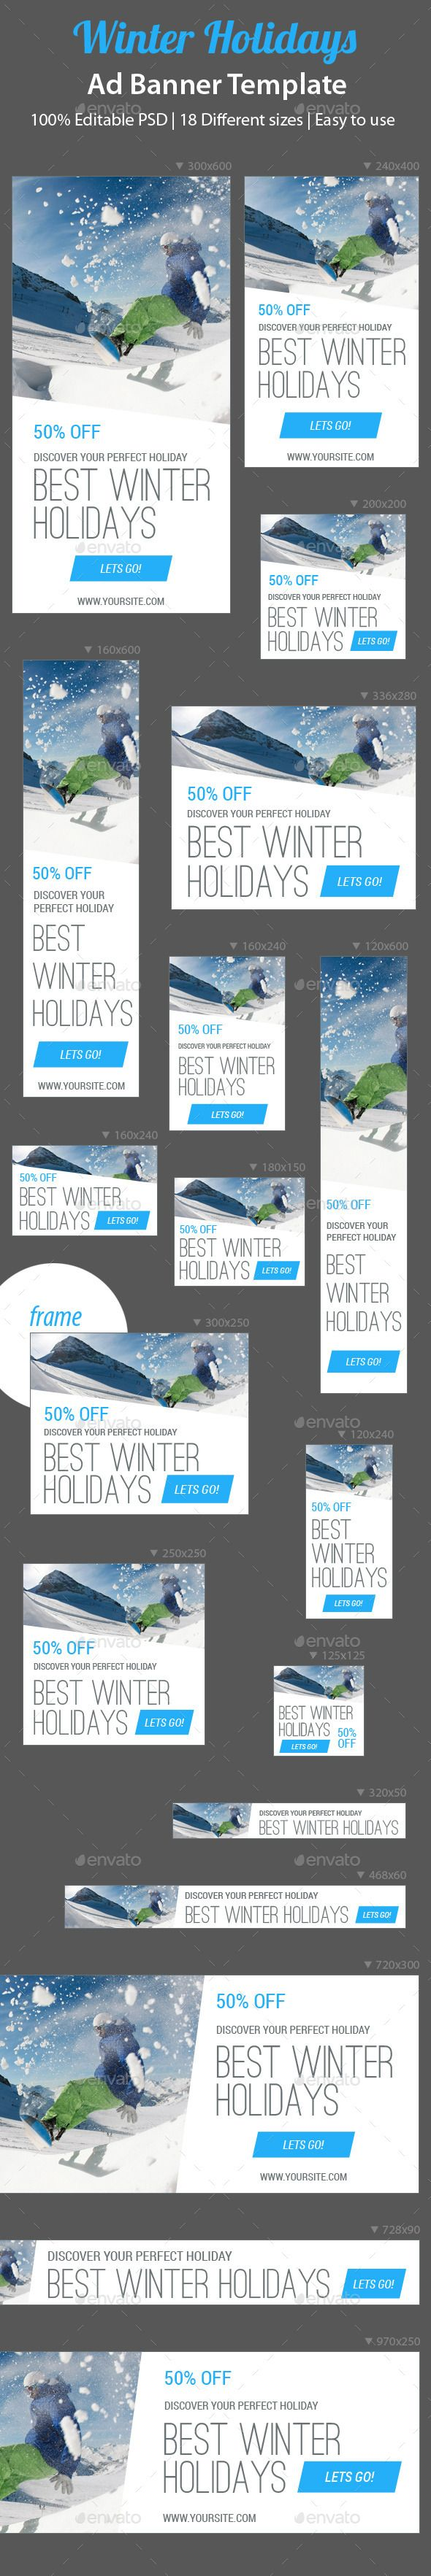 Winter Holidays Web Ad Banners Template PSD | Buy and Download: http://graphicriver.net/item/winter-holidays-web-ad-banners/9169588?WT.ac=category_thumb&WT.z_author=ksioks&ref=ksioks